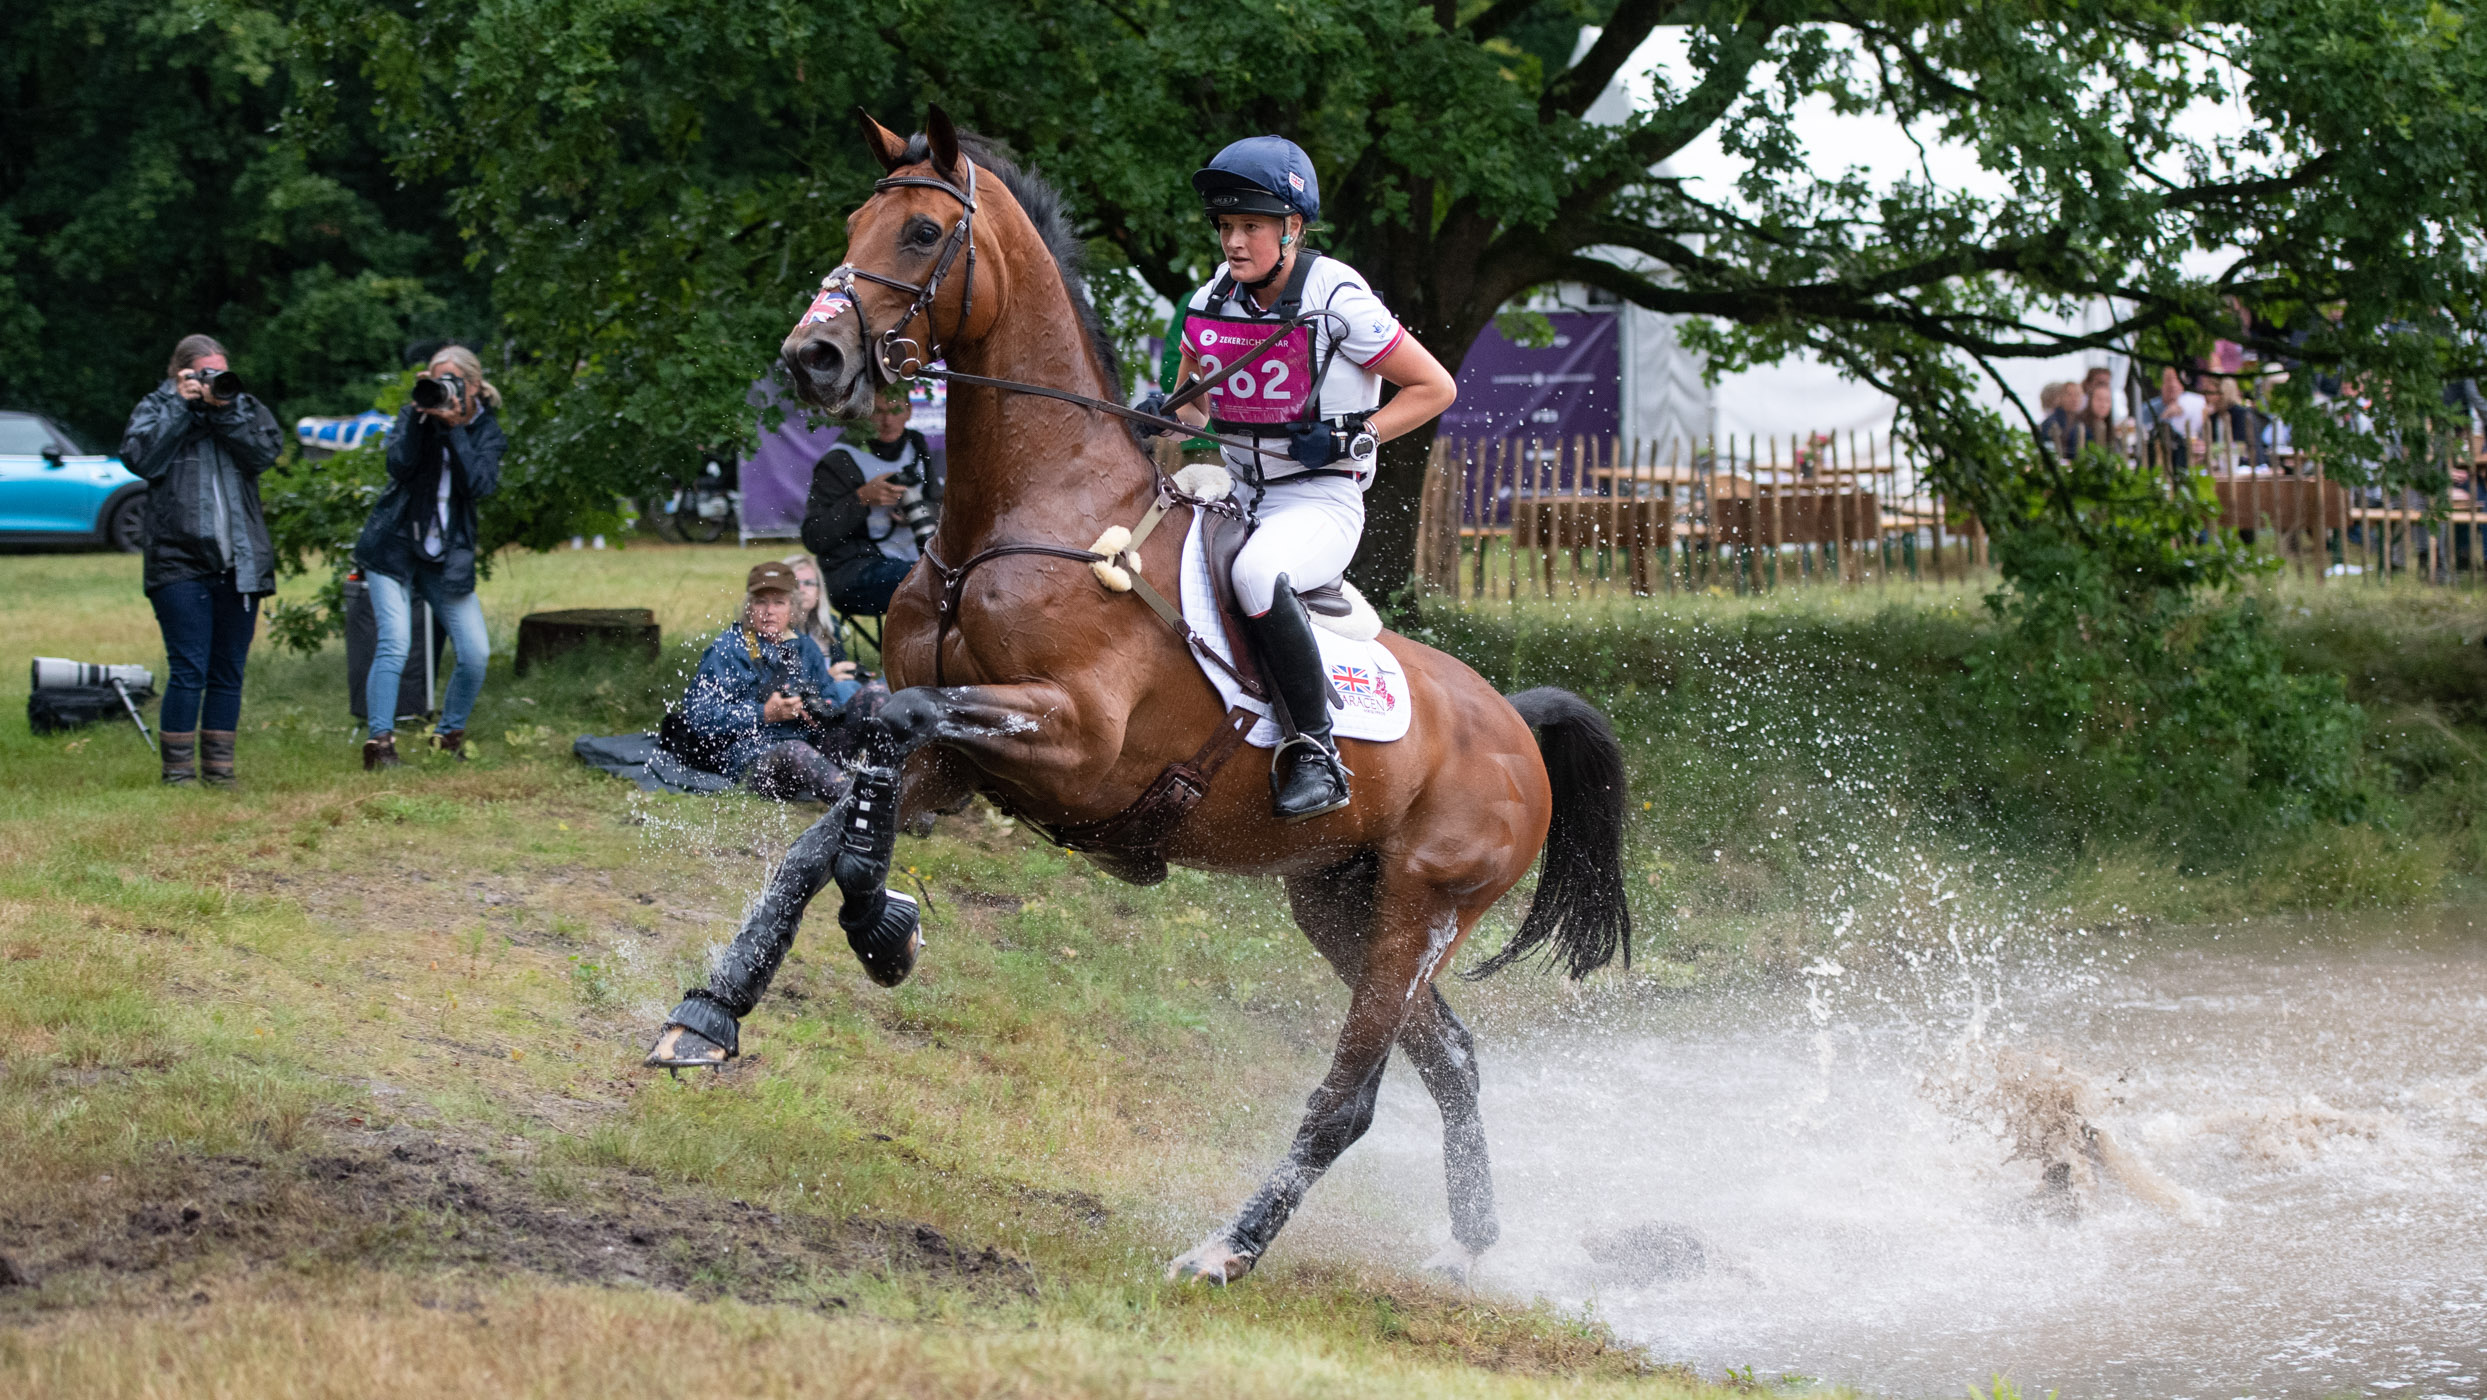 Young riders thrive in the last day of competition at